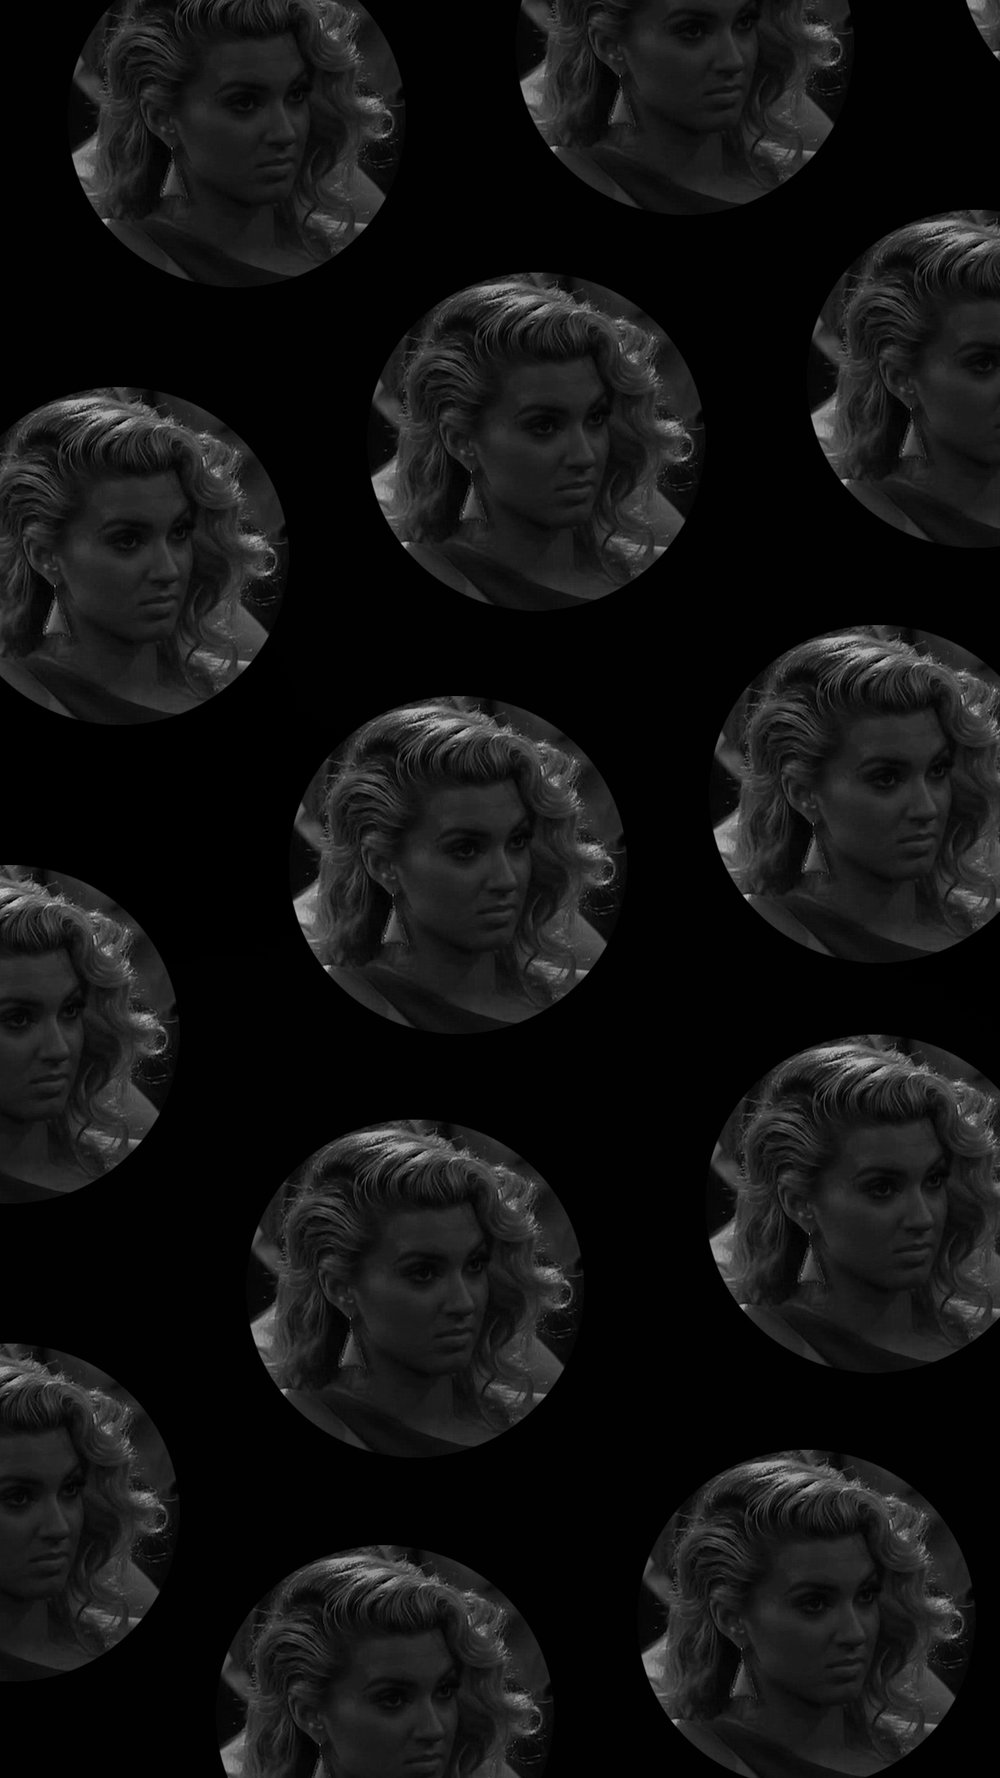 torikelly-lockscreen18.jpg